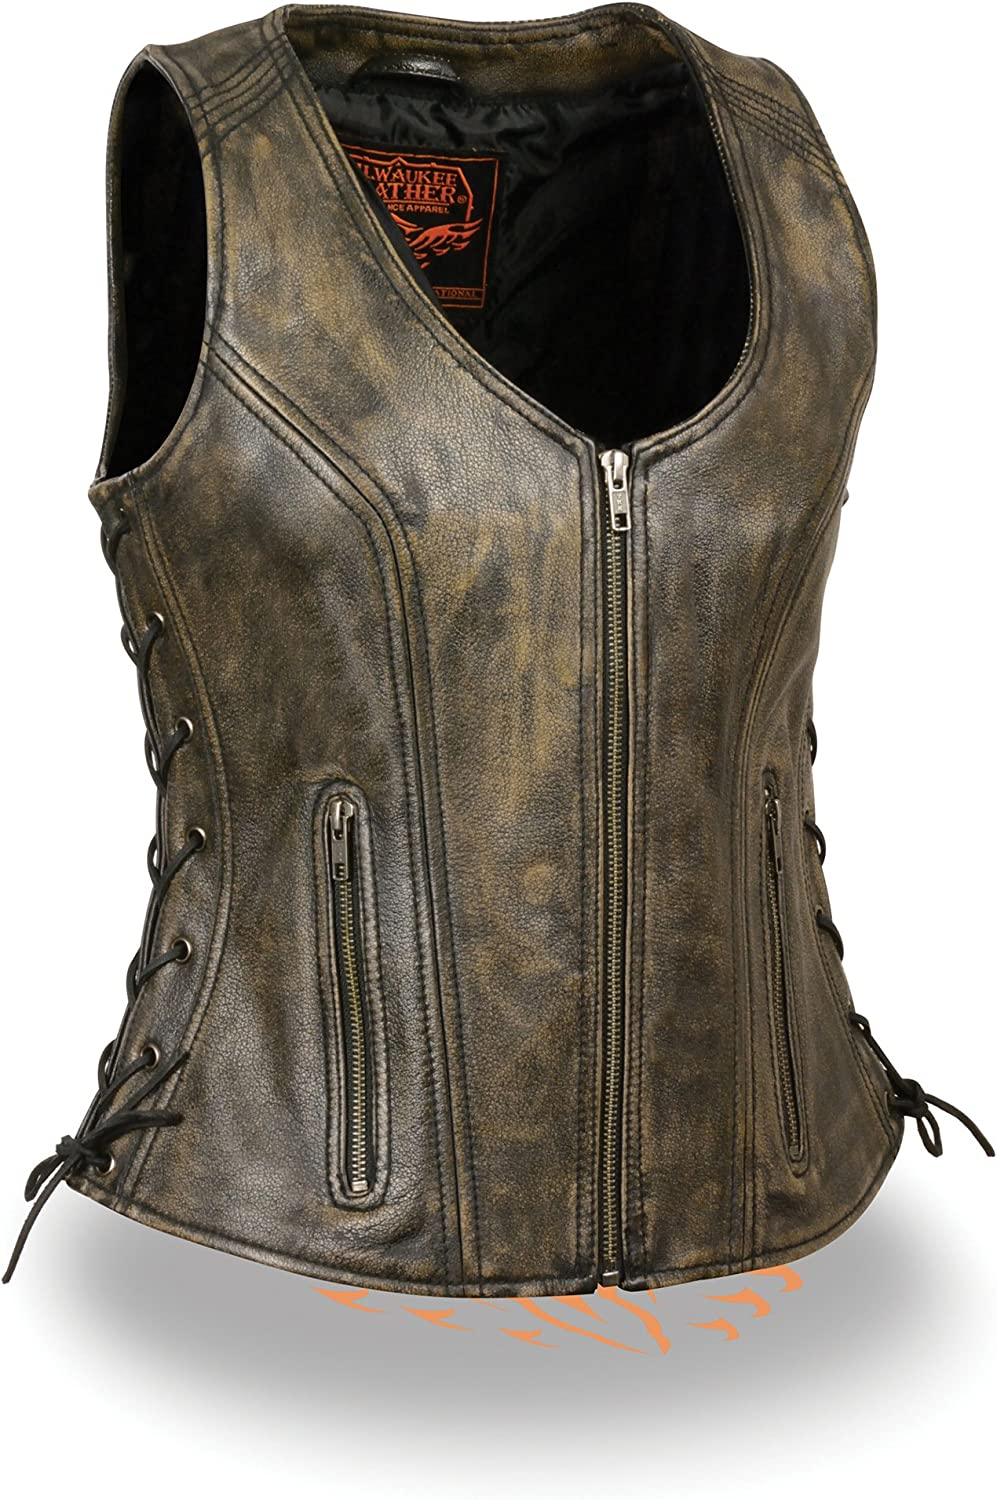 WOMENS MOTORCYCLE RIDERS DISTRESSED BROWN SOFT LEATHER VEST W// SIDE LACES NEW Regular 5XL Regular